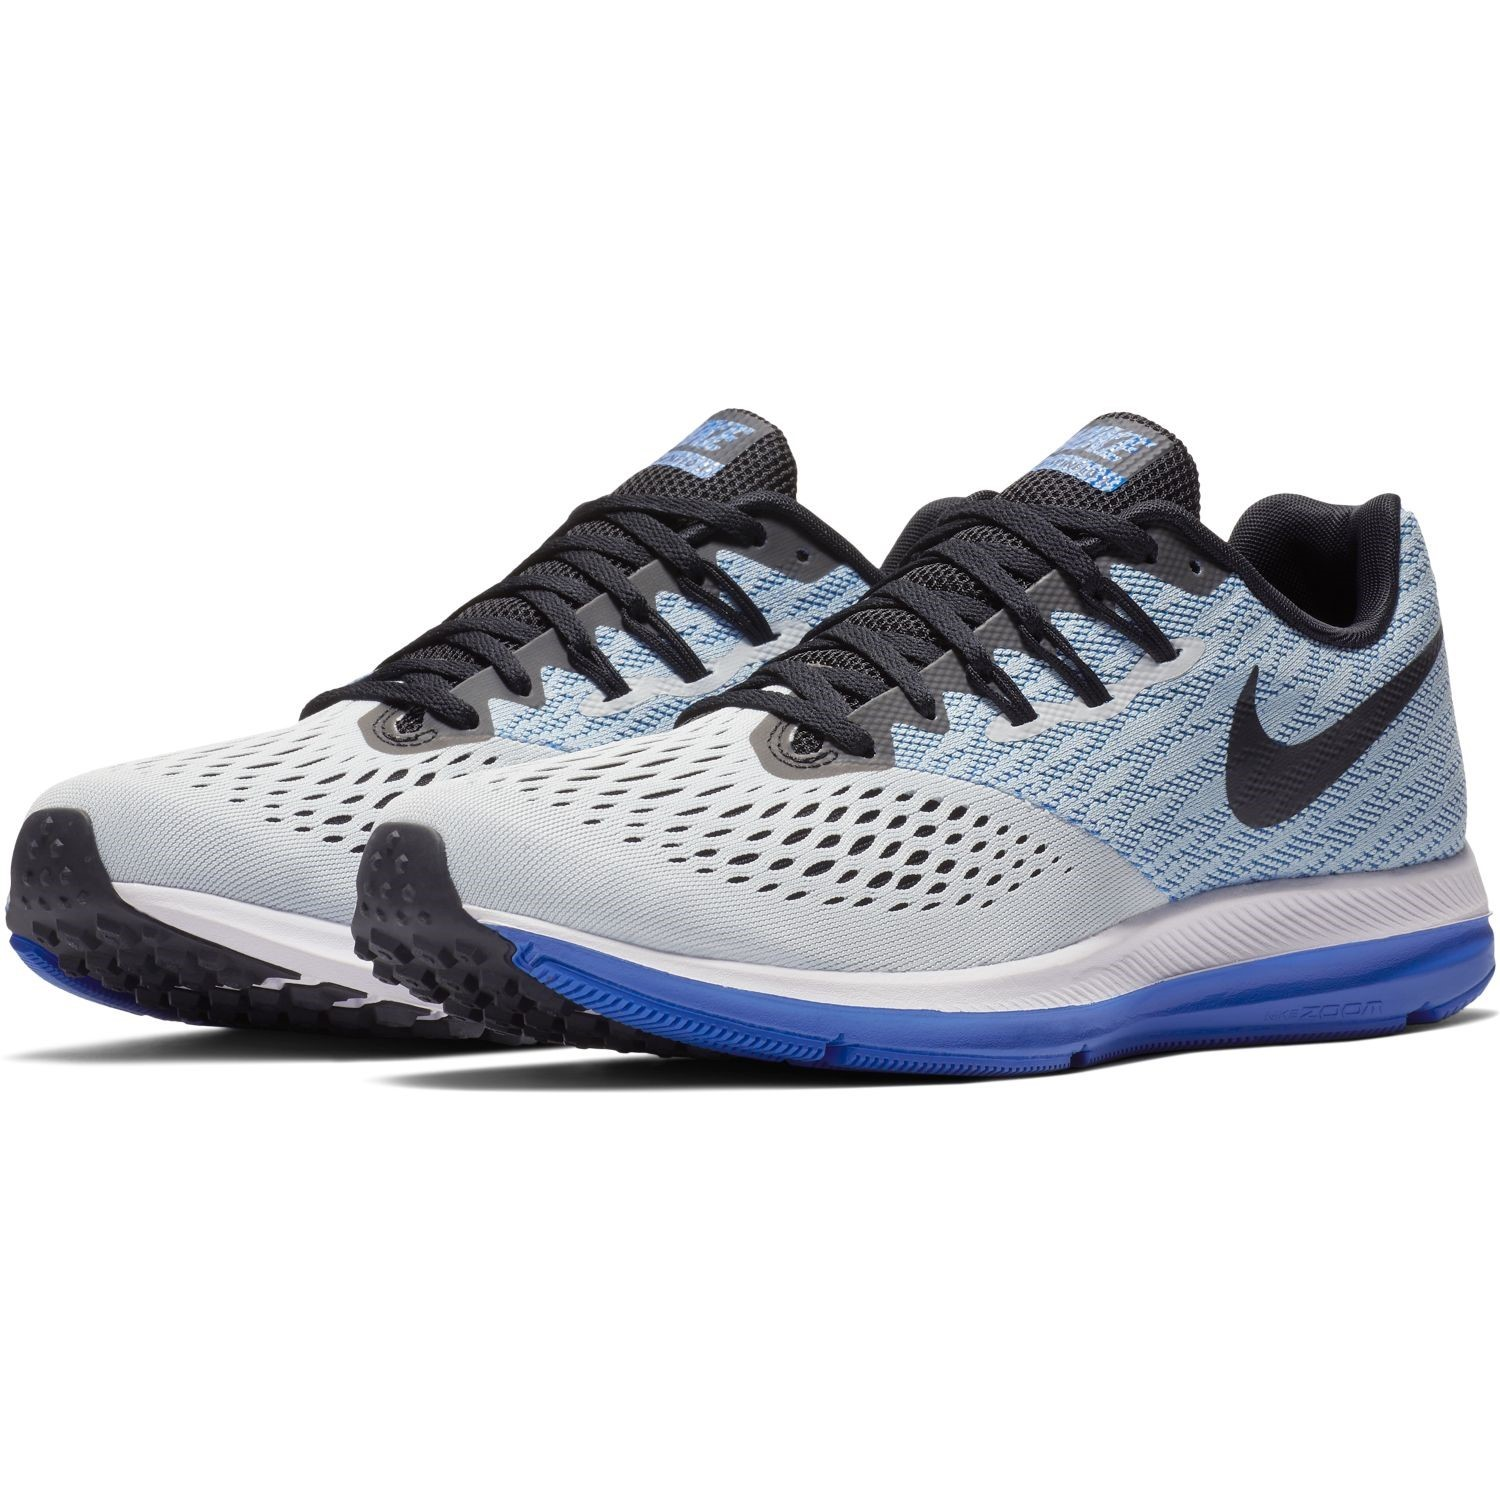 6ab4b3bf63d Nike Zoom Winflo 4 - Mens Running Shoes - Pure Platinum Black Hyper Royal